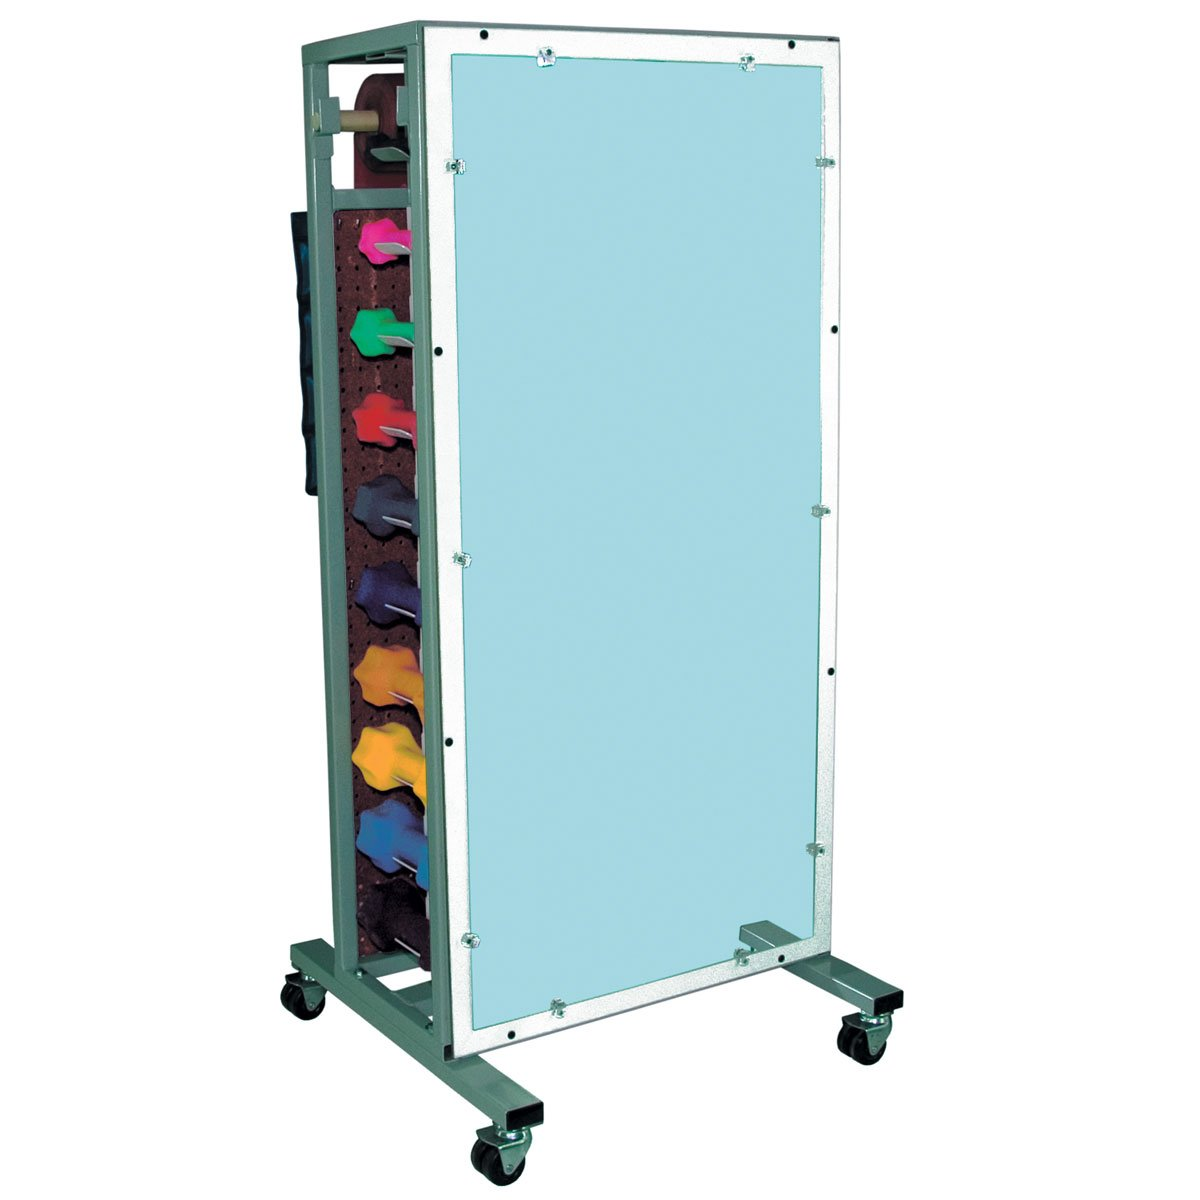 Ideal Medical Products MWR75 Combo Cuff Weight and Dumbbell Rack with Mirror by Ideal Medical Products, Inc.